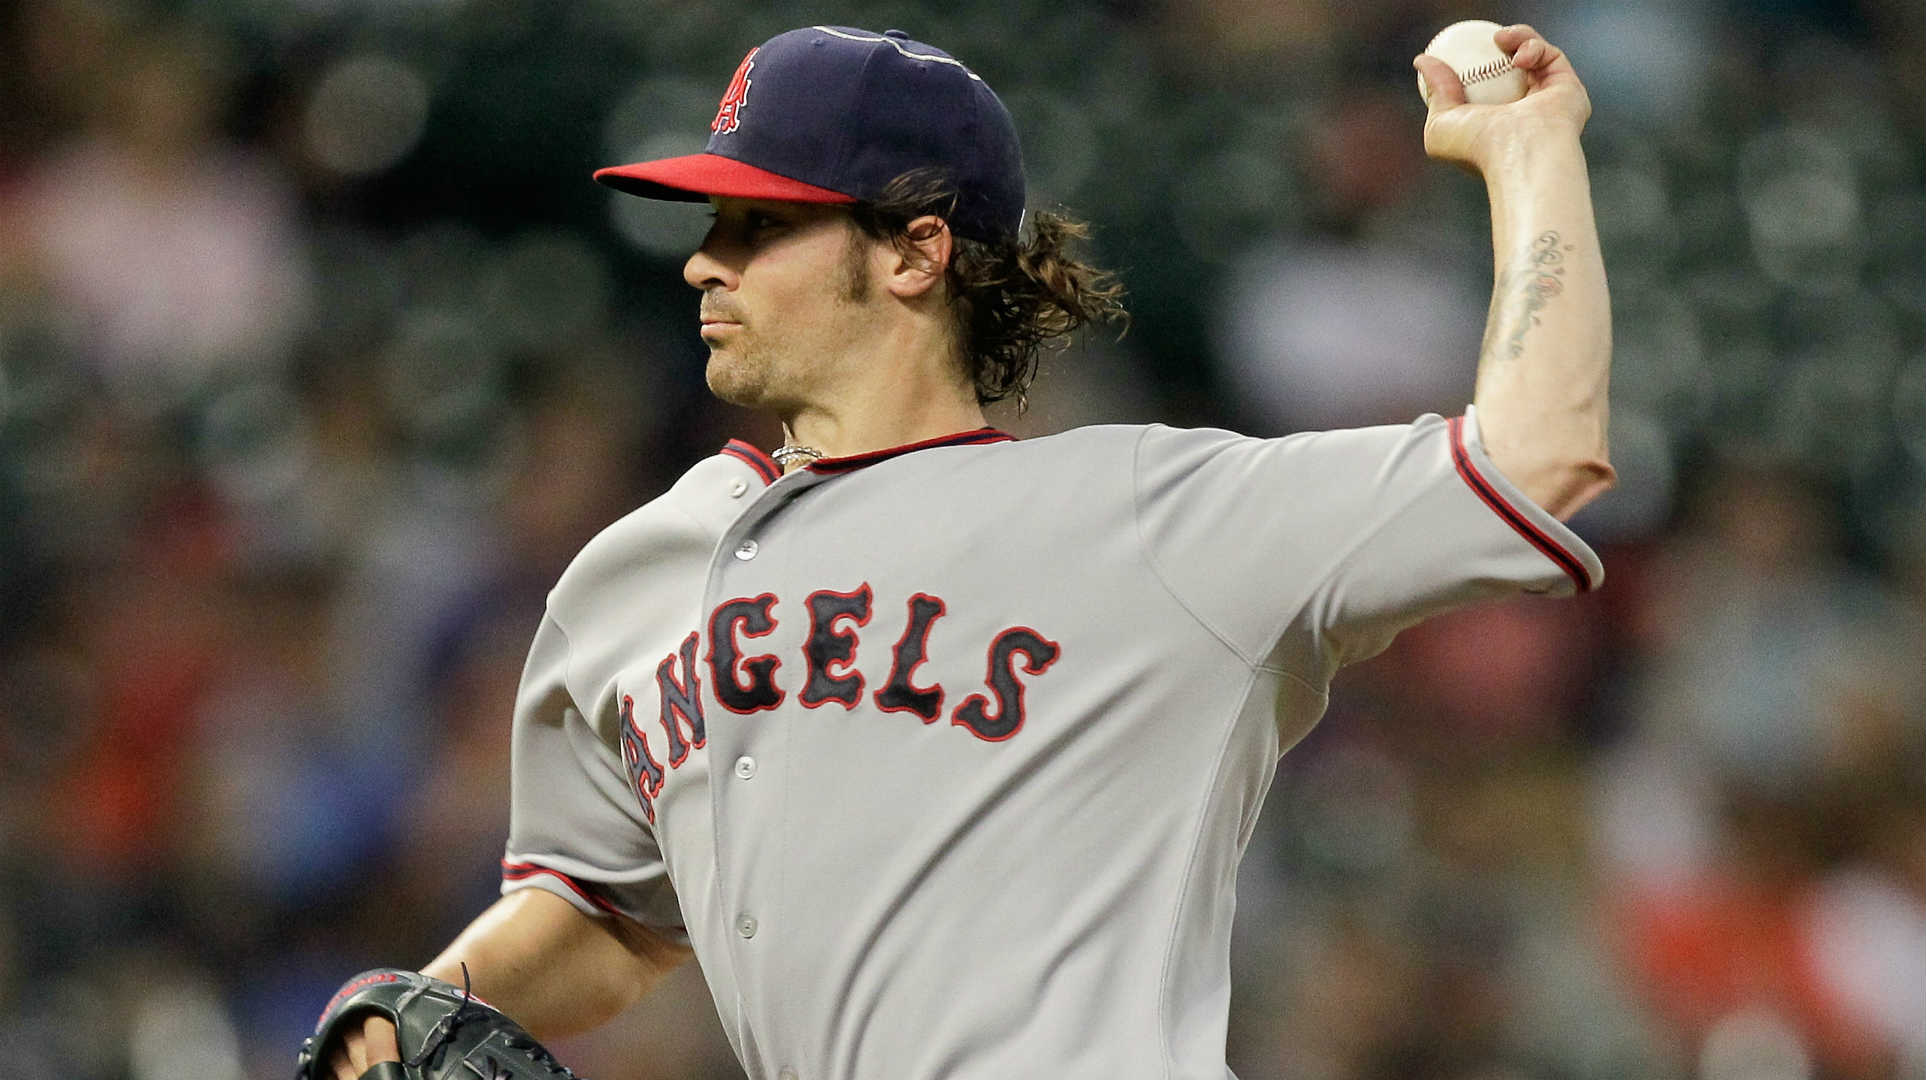 Angels starter C.J. Wilson may need season-ending elbow surgery